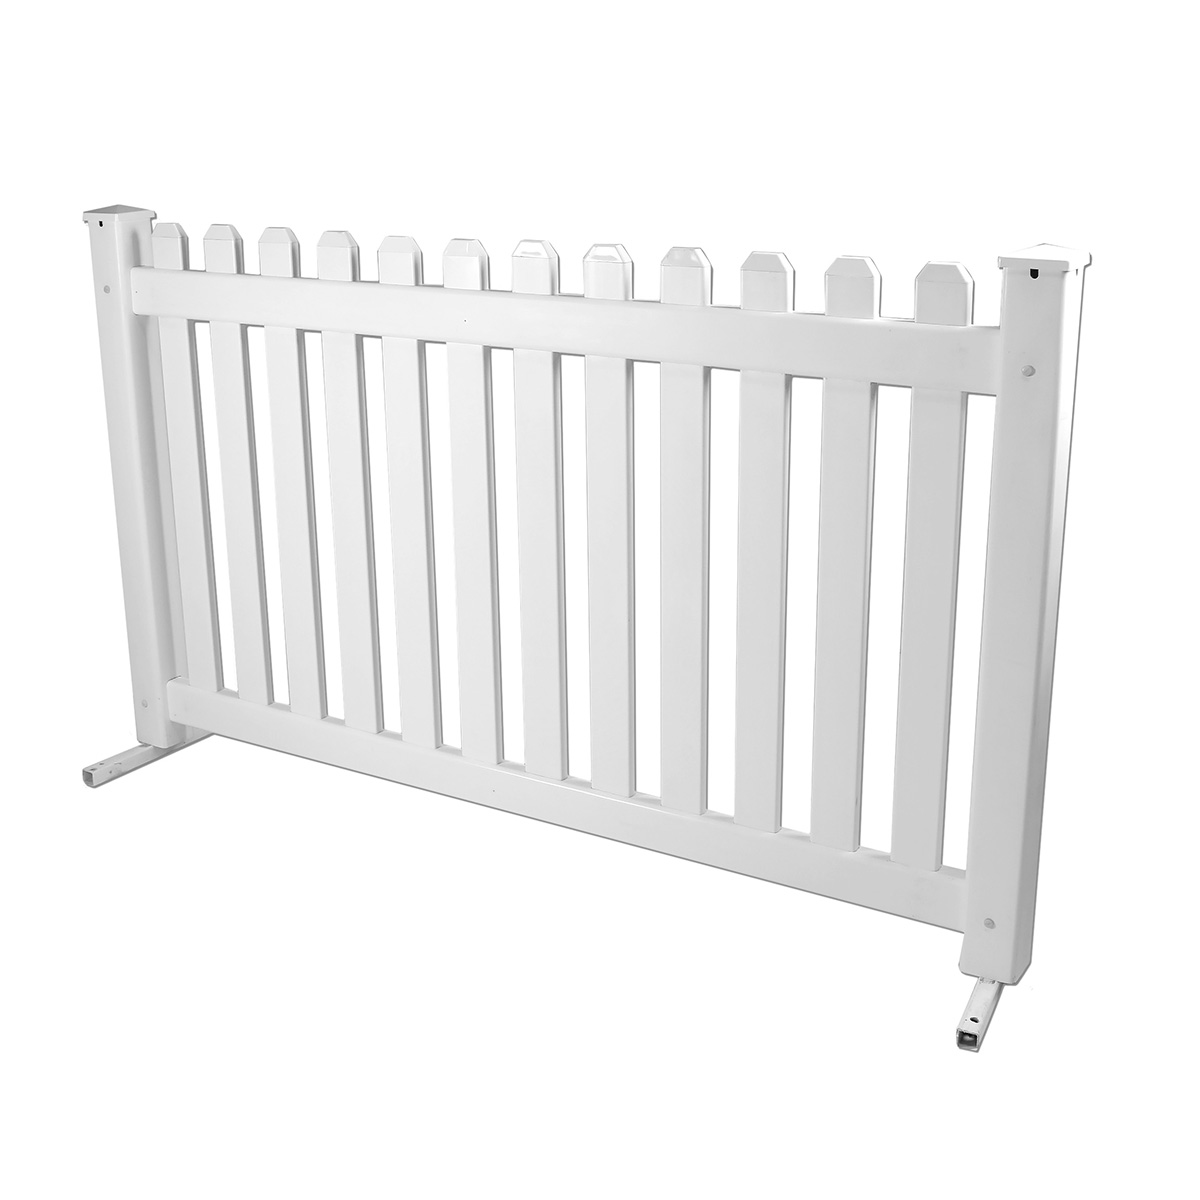 6' White Picket Fence